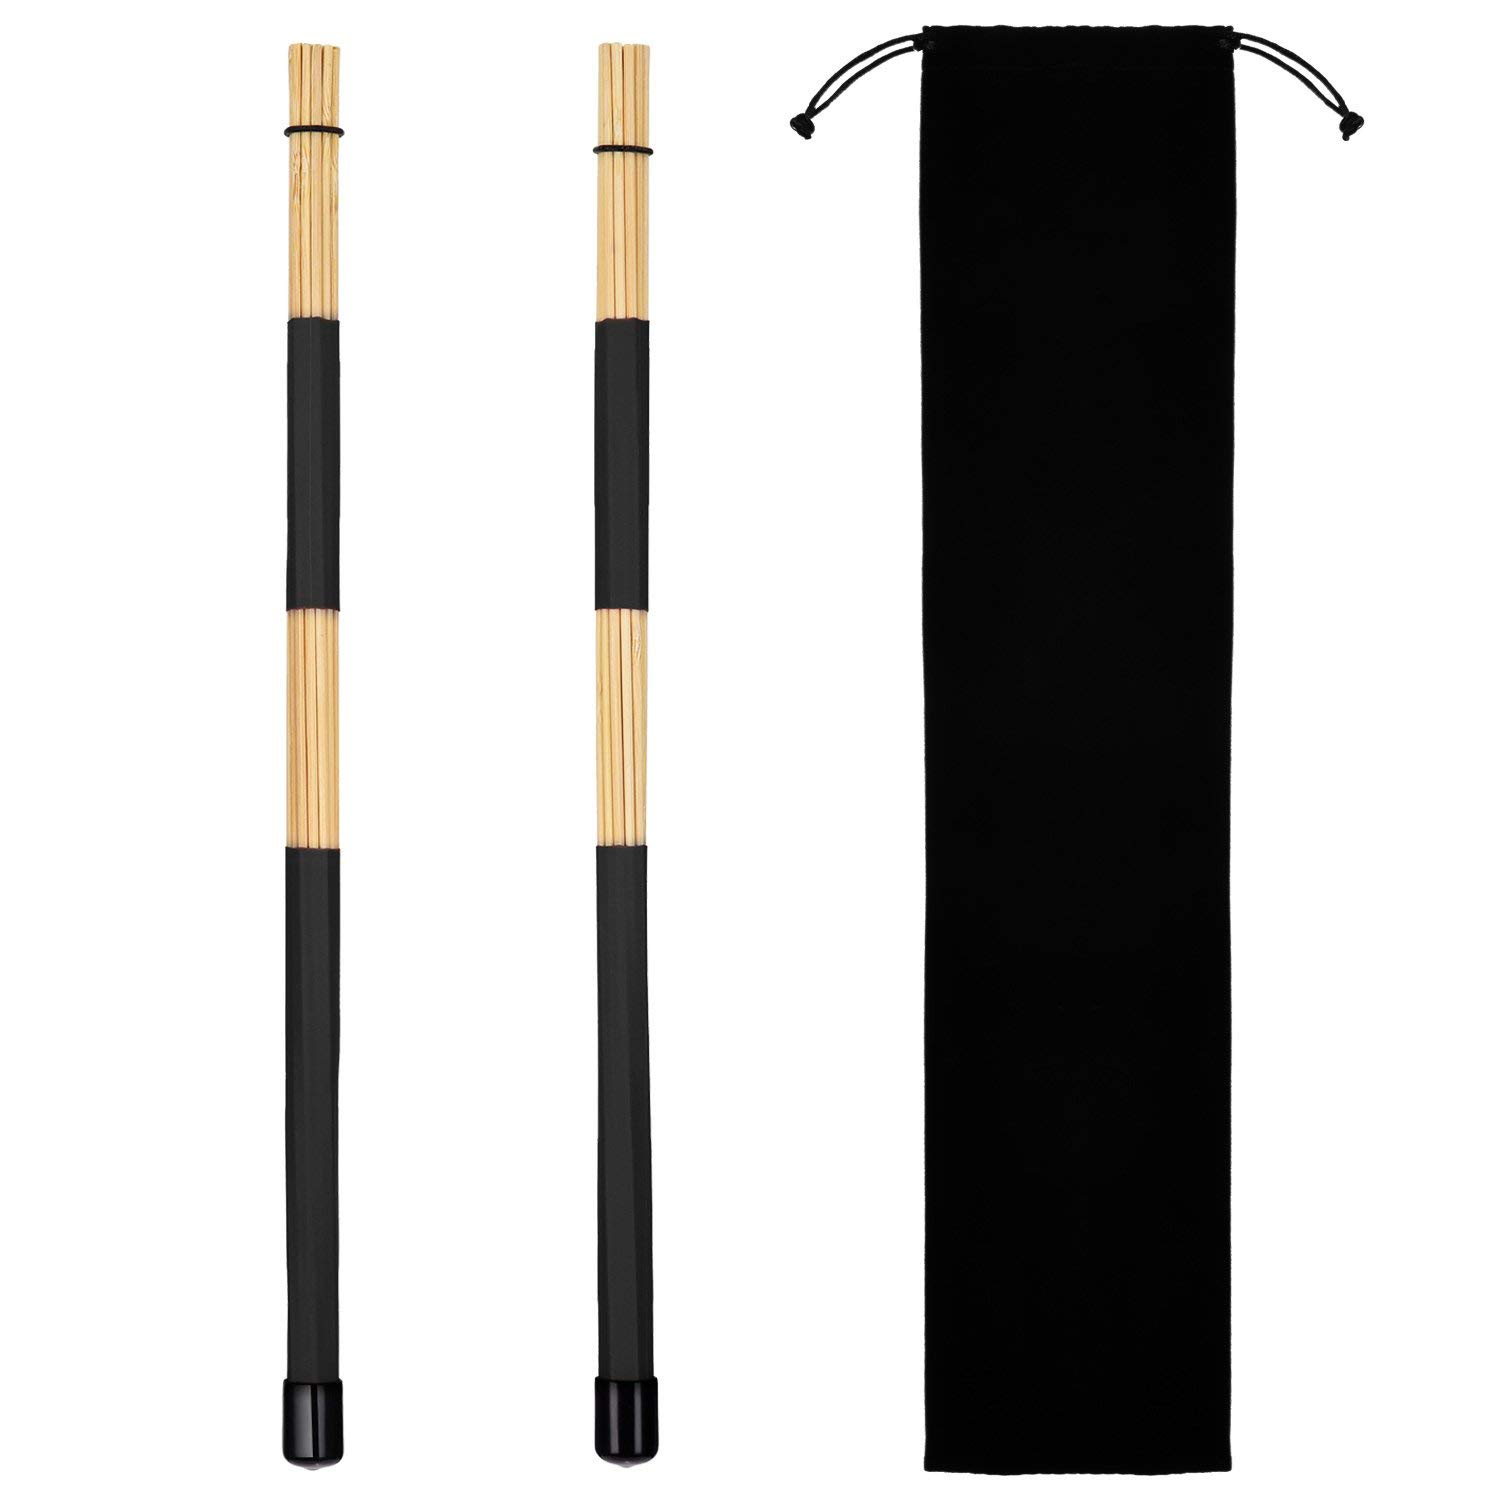 Pangda 1 Pair Rods Drum Brushes Sticks Drum Stick Set for Jazz Folk Music (Black)